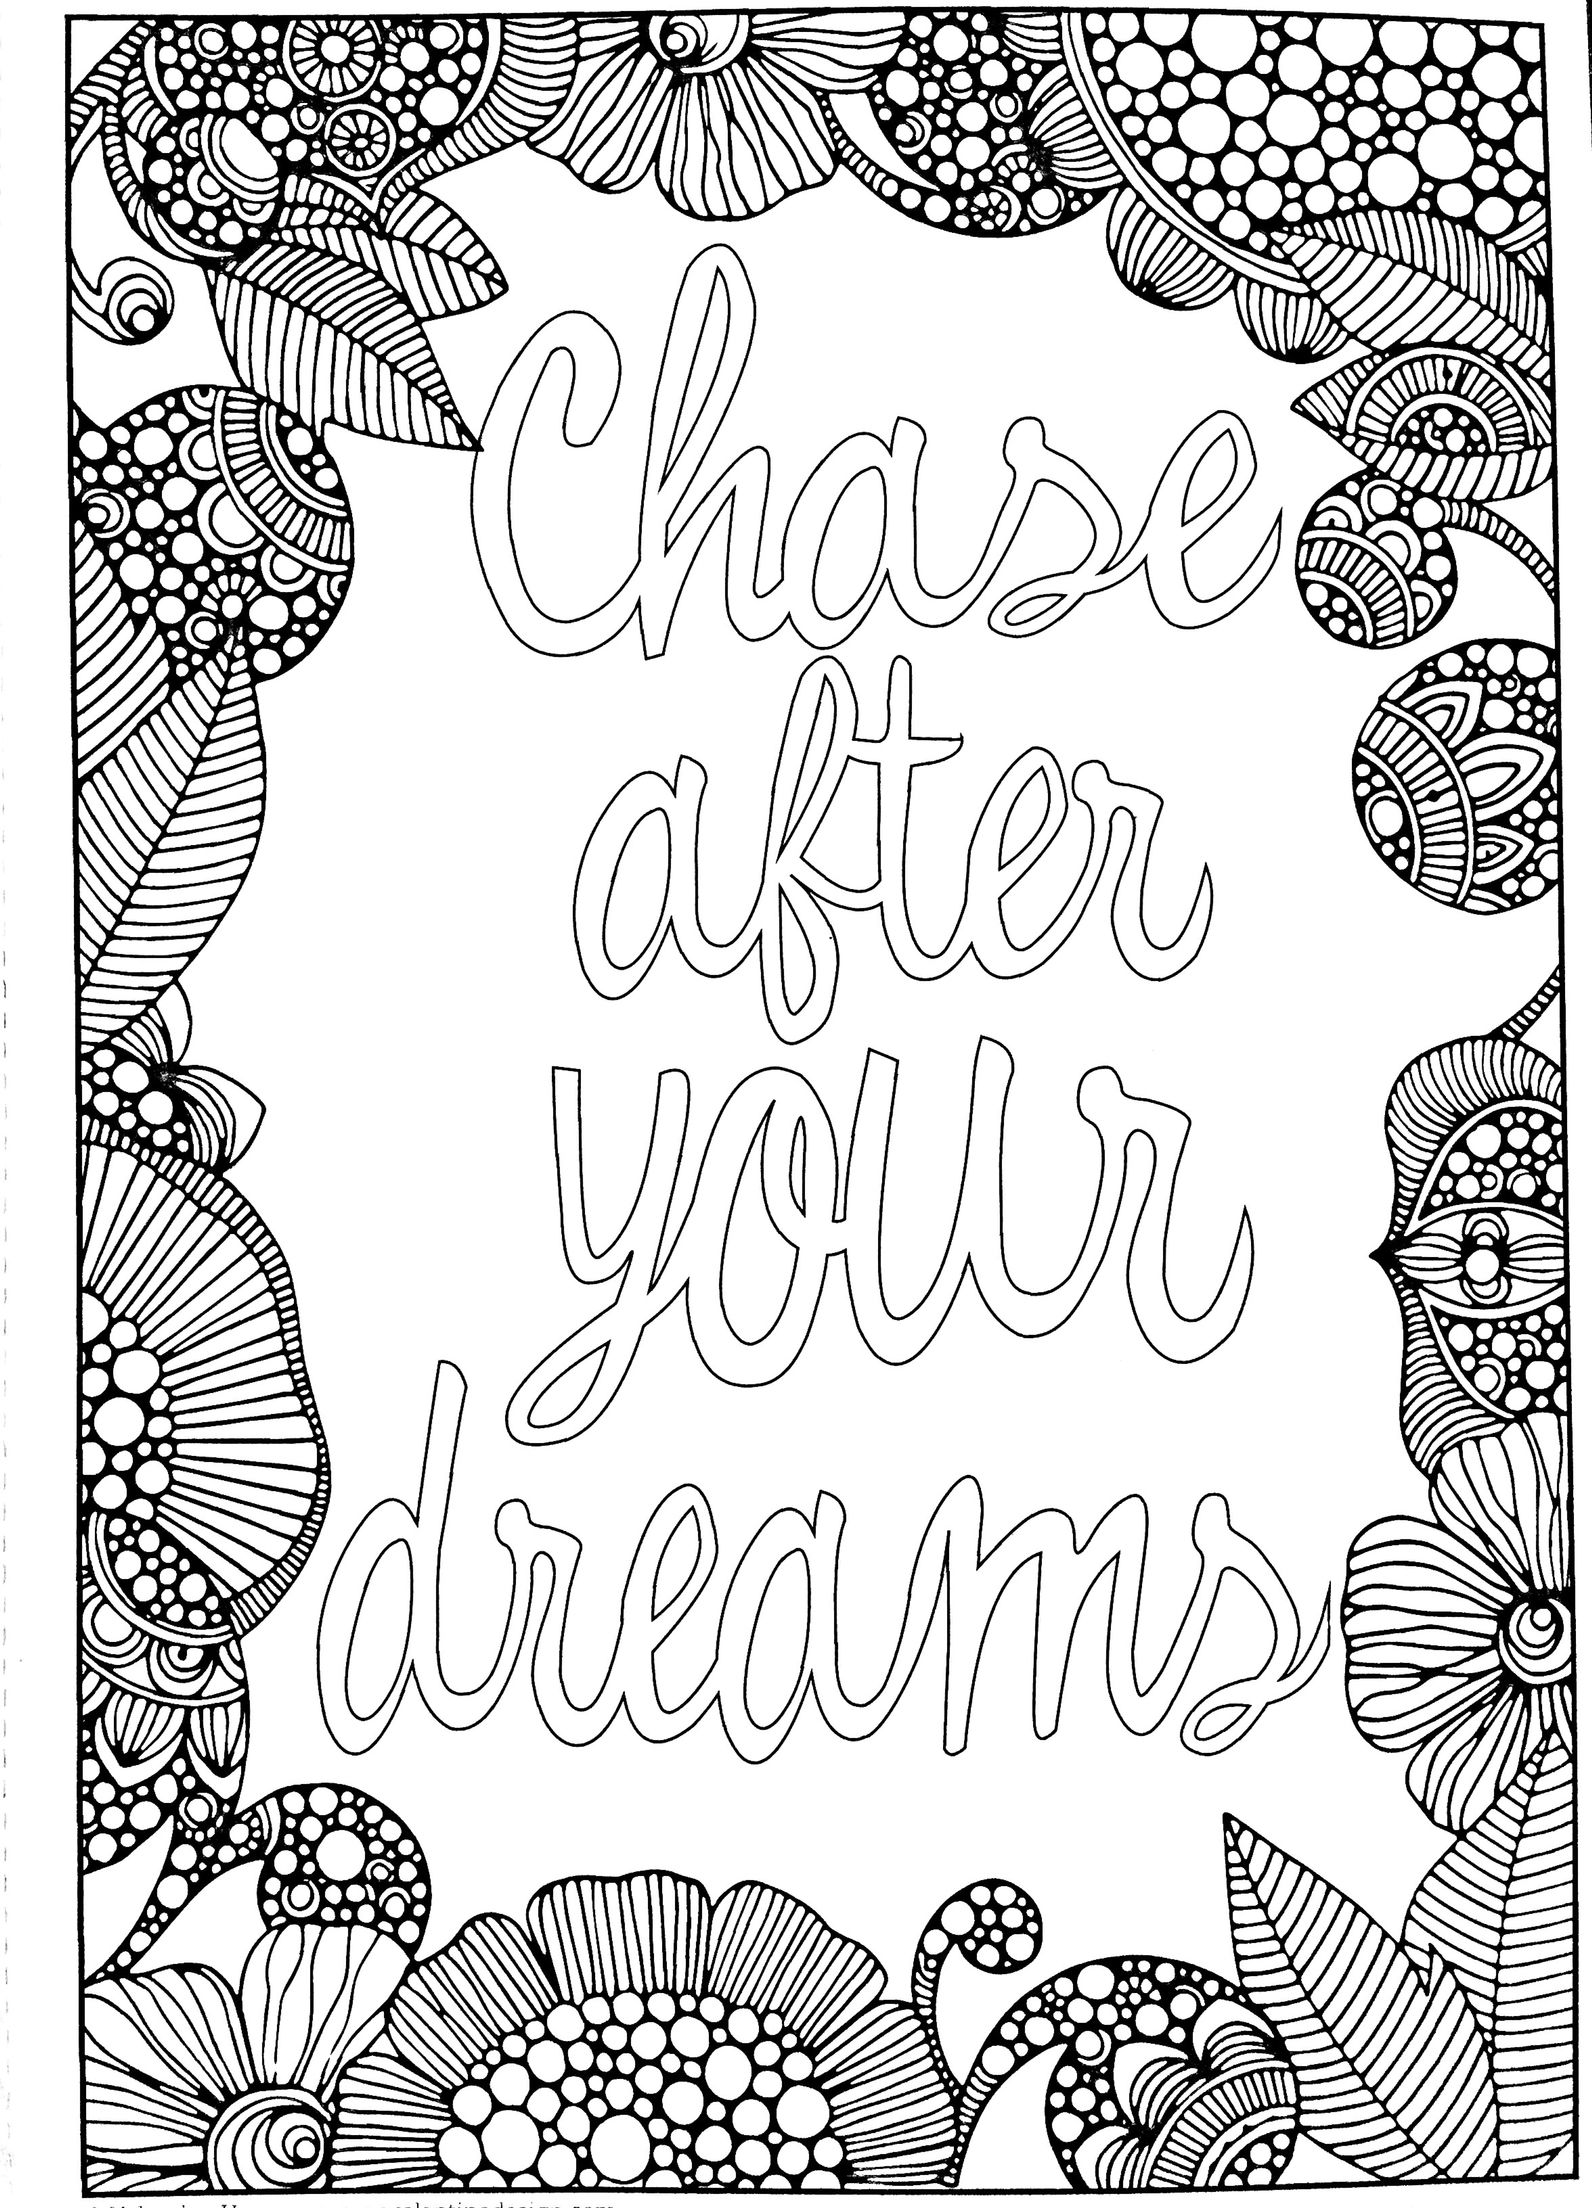 Chase After Your Dreams Coloring Page